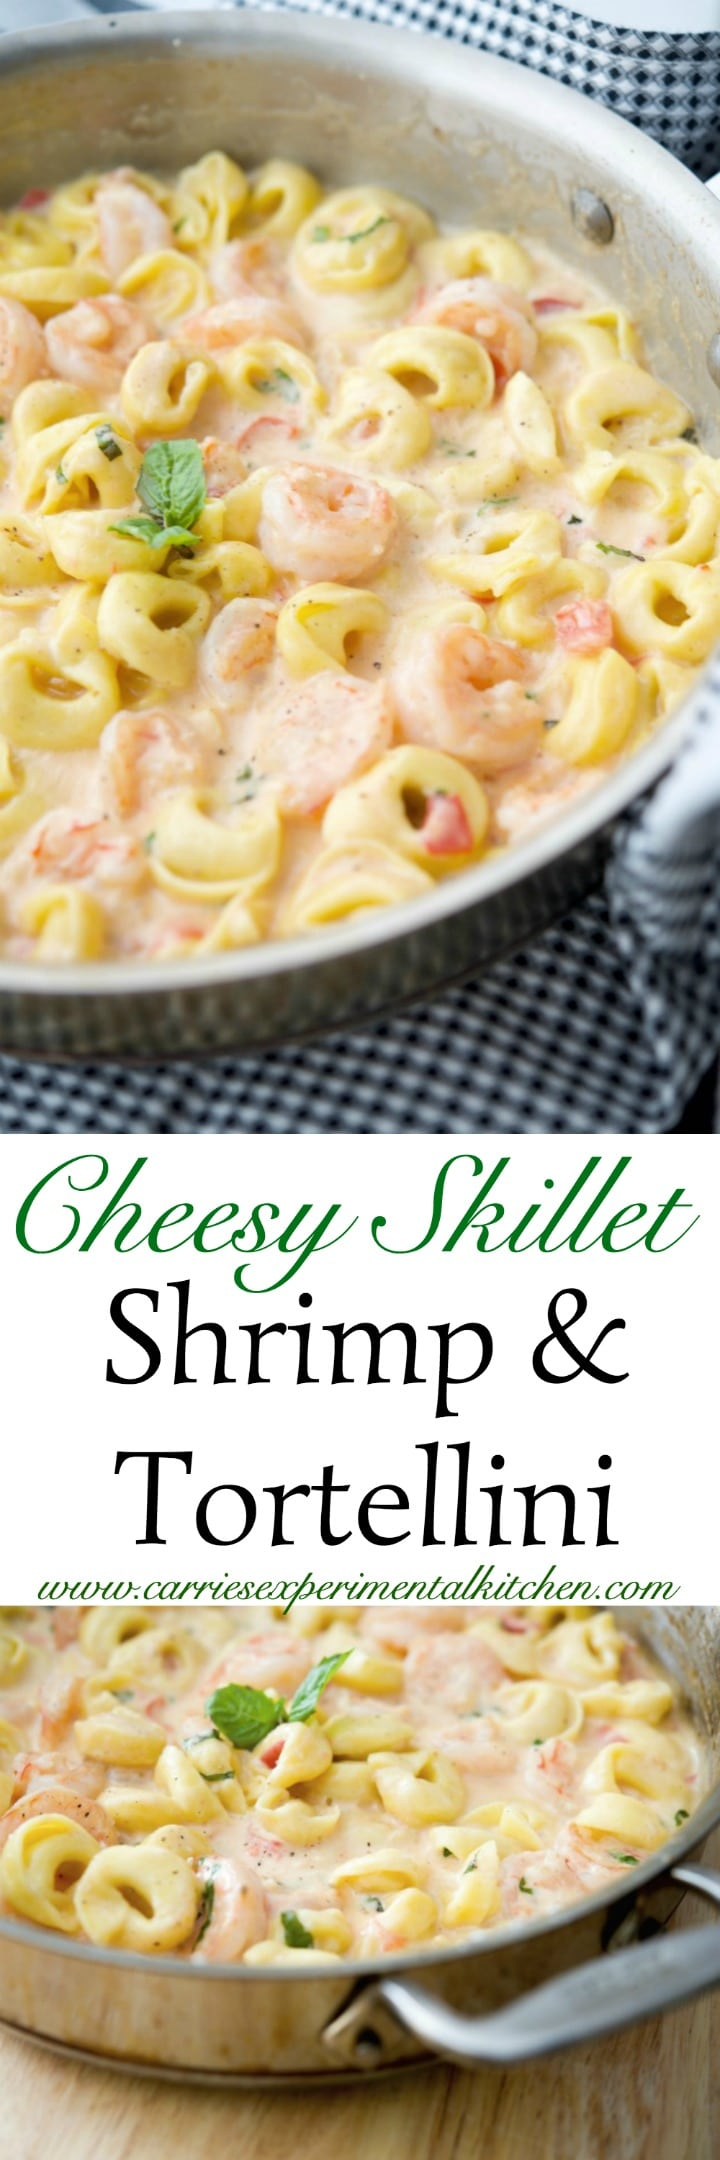 Cheesy Skillet Shrimp & Tortellini made with jumbo shrimp combined with cheese tortellini in a cheesy tomato basil Alfredo sauce. #shrimp #pasta #skillet